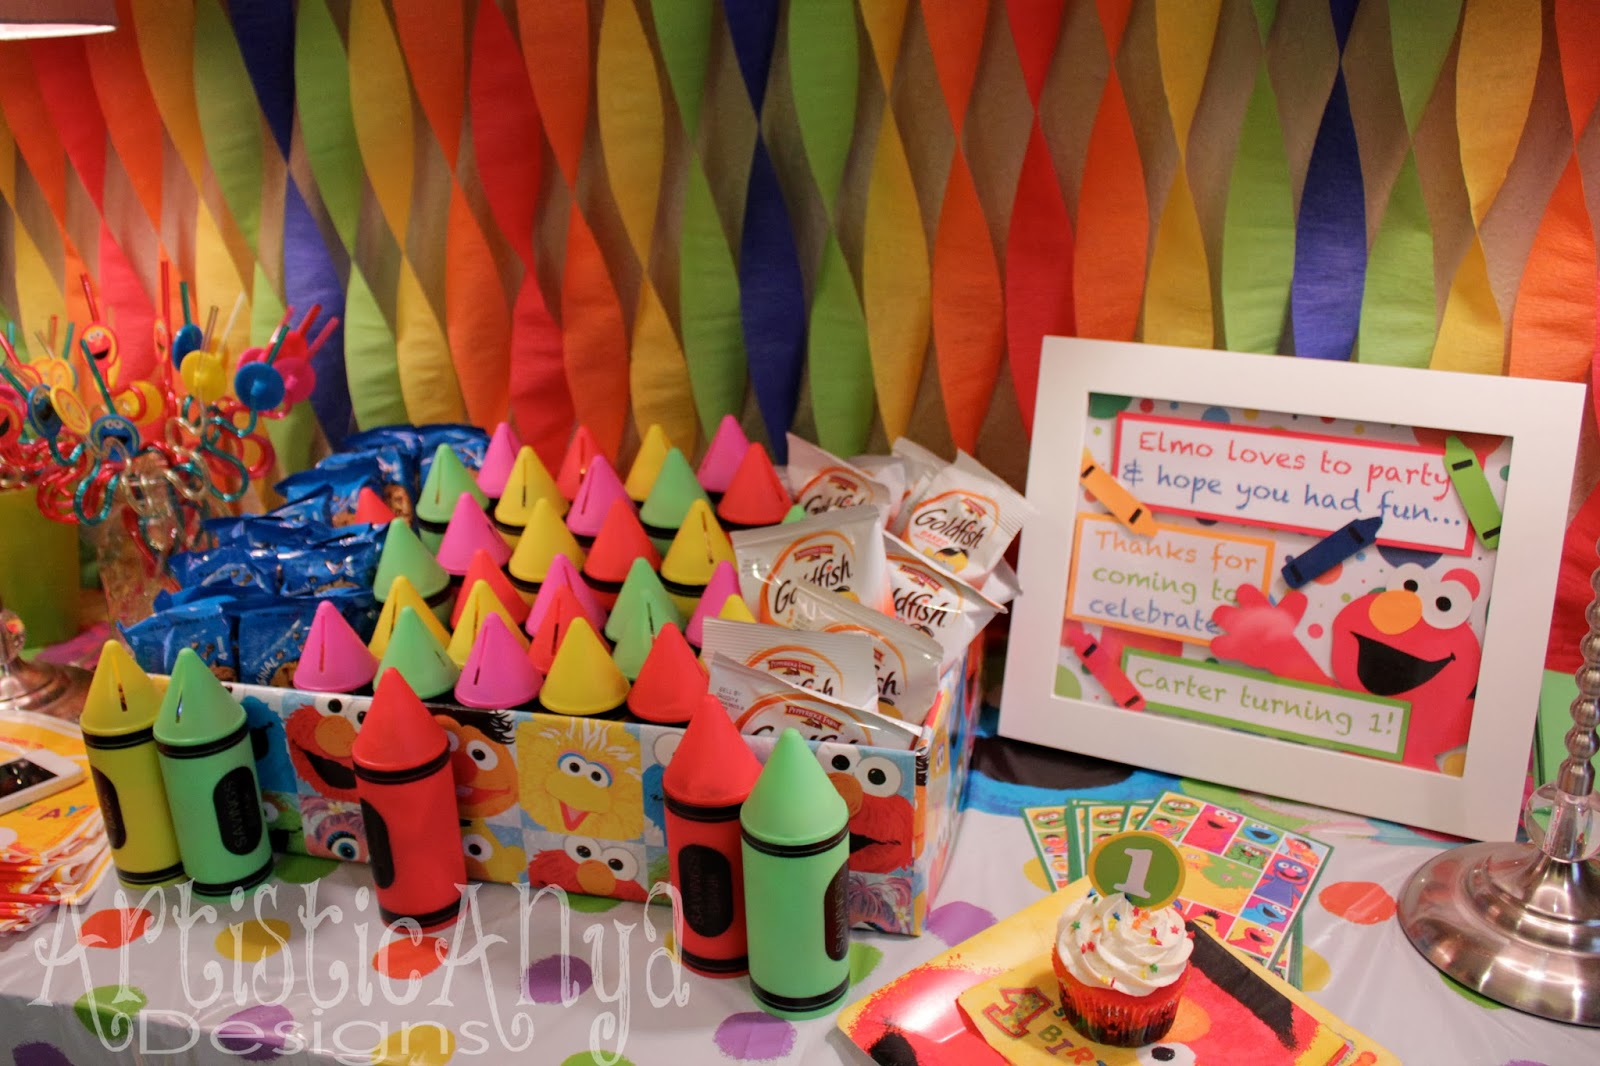 Elmo 1st birthday party ideas birthday party sesamestreet - Artistic Anya Designs Elmo And Friends Sesame Street 1st Birthday Party